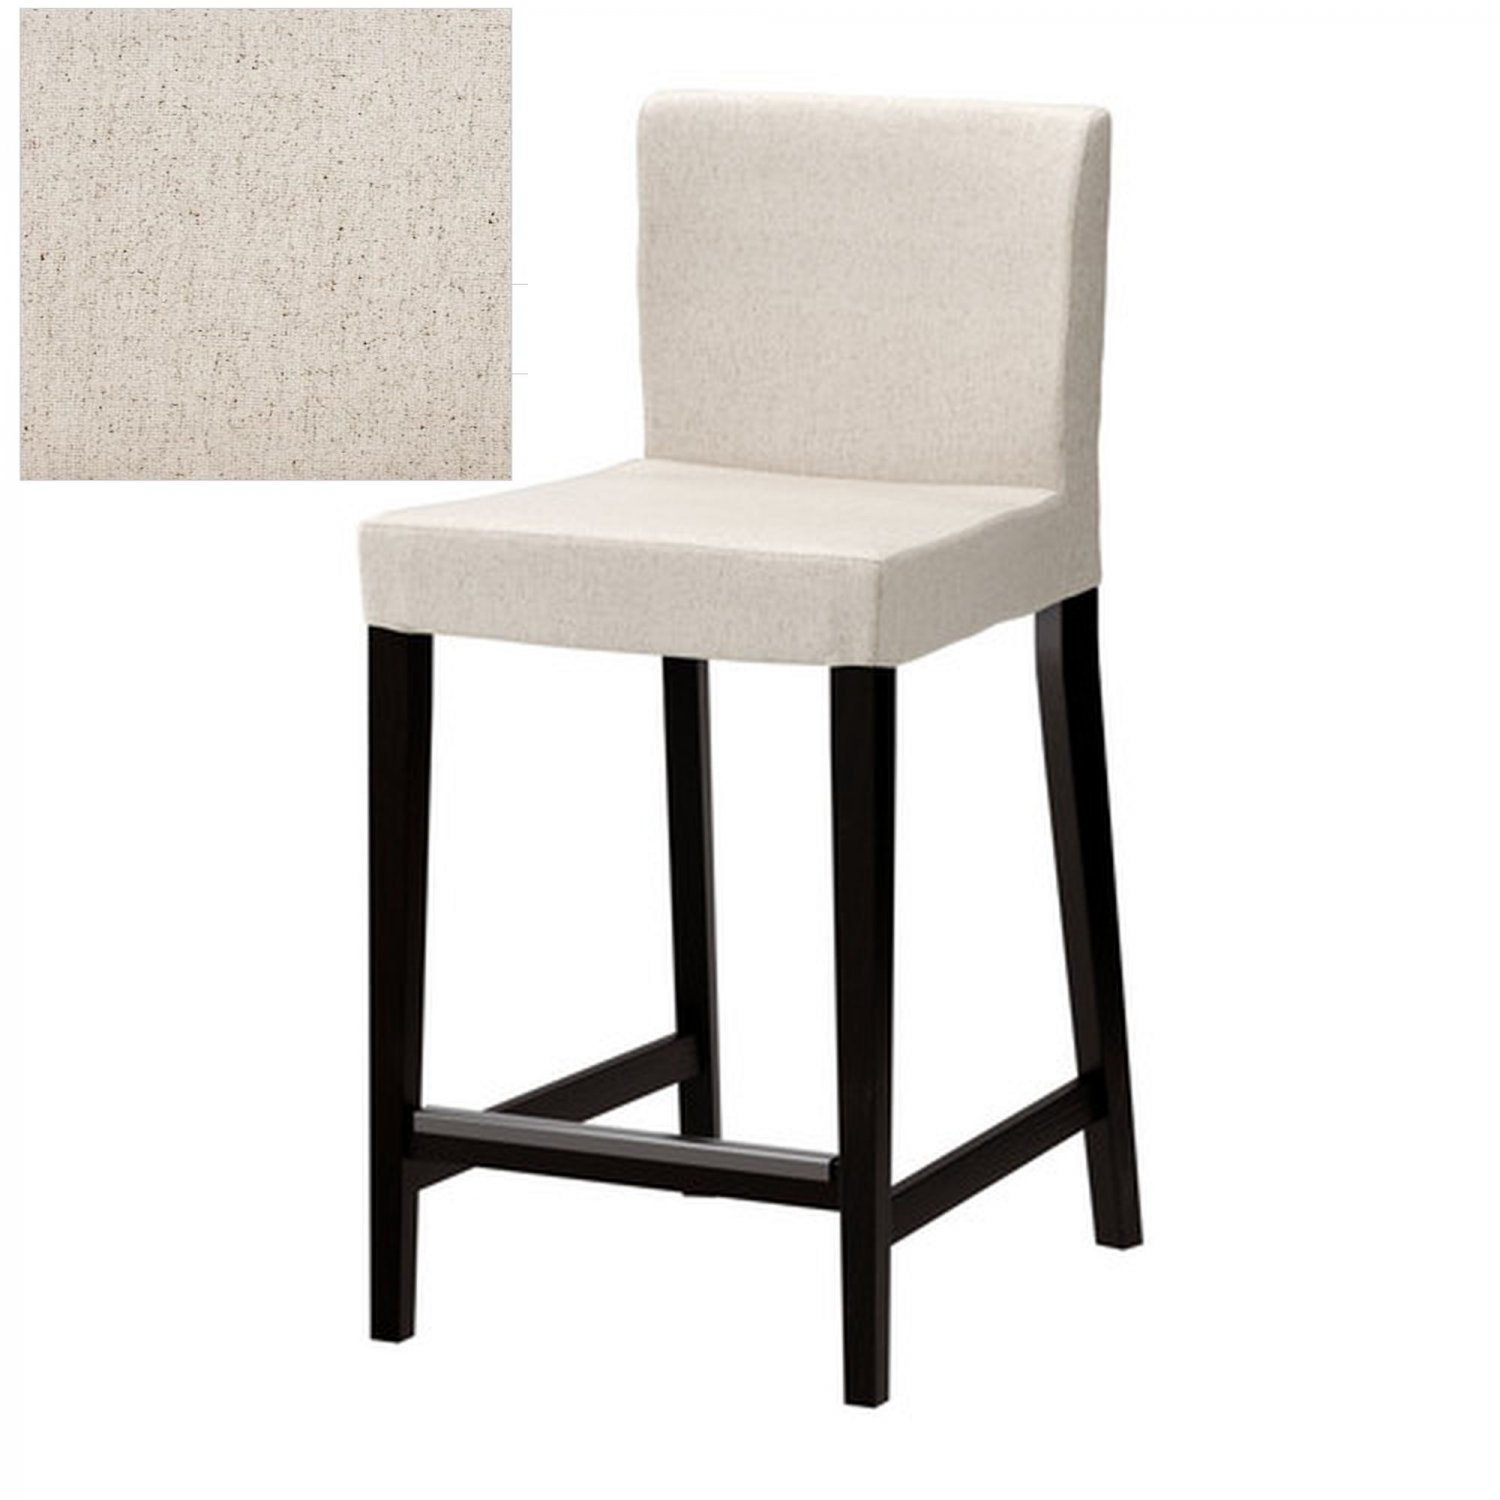 IKEA HENRIKSDAL LINNERYD NATURAL Bar Stool SLIPCOVER  : 53c9b660645c954622b from rock-paper-scissors.ecrater.com size 1500 x 1500 jpeg 131kB